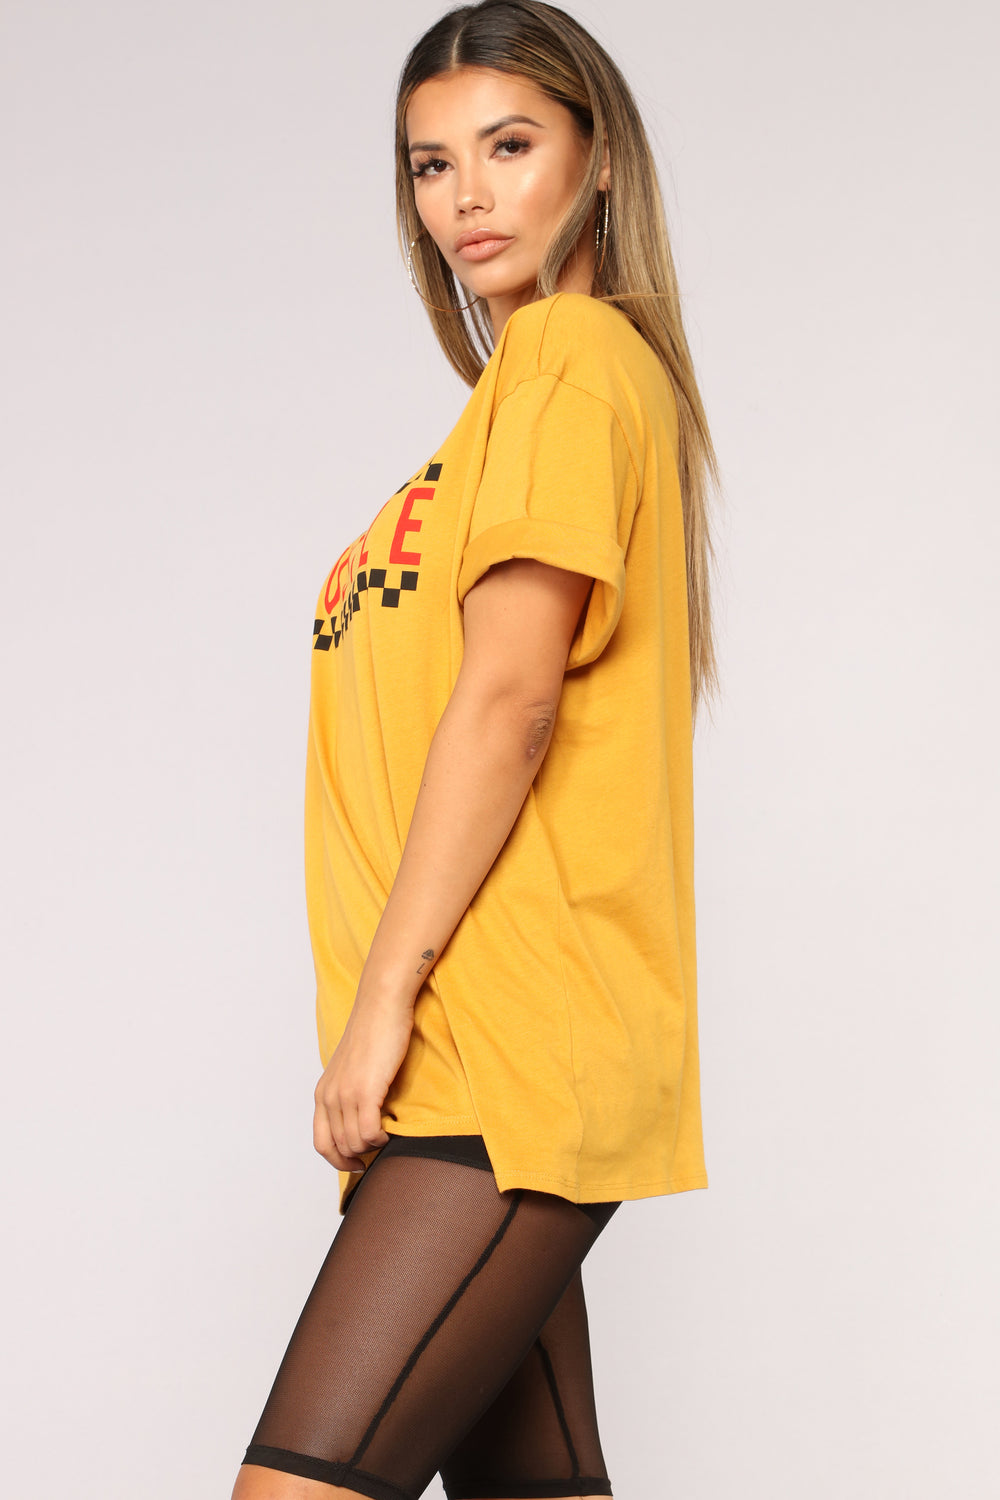 Do The Hustle Tee - Mustard